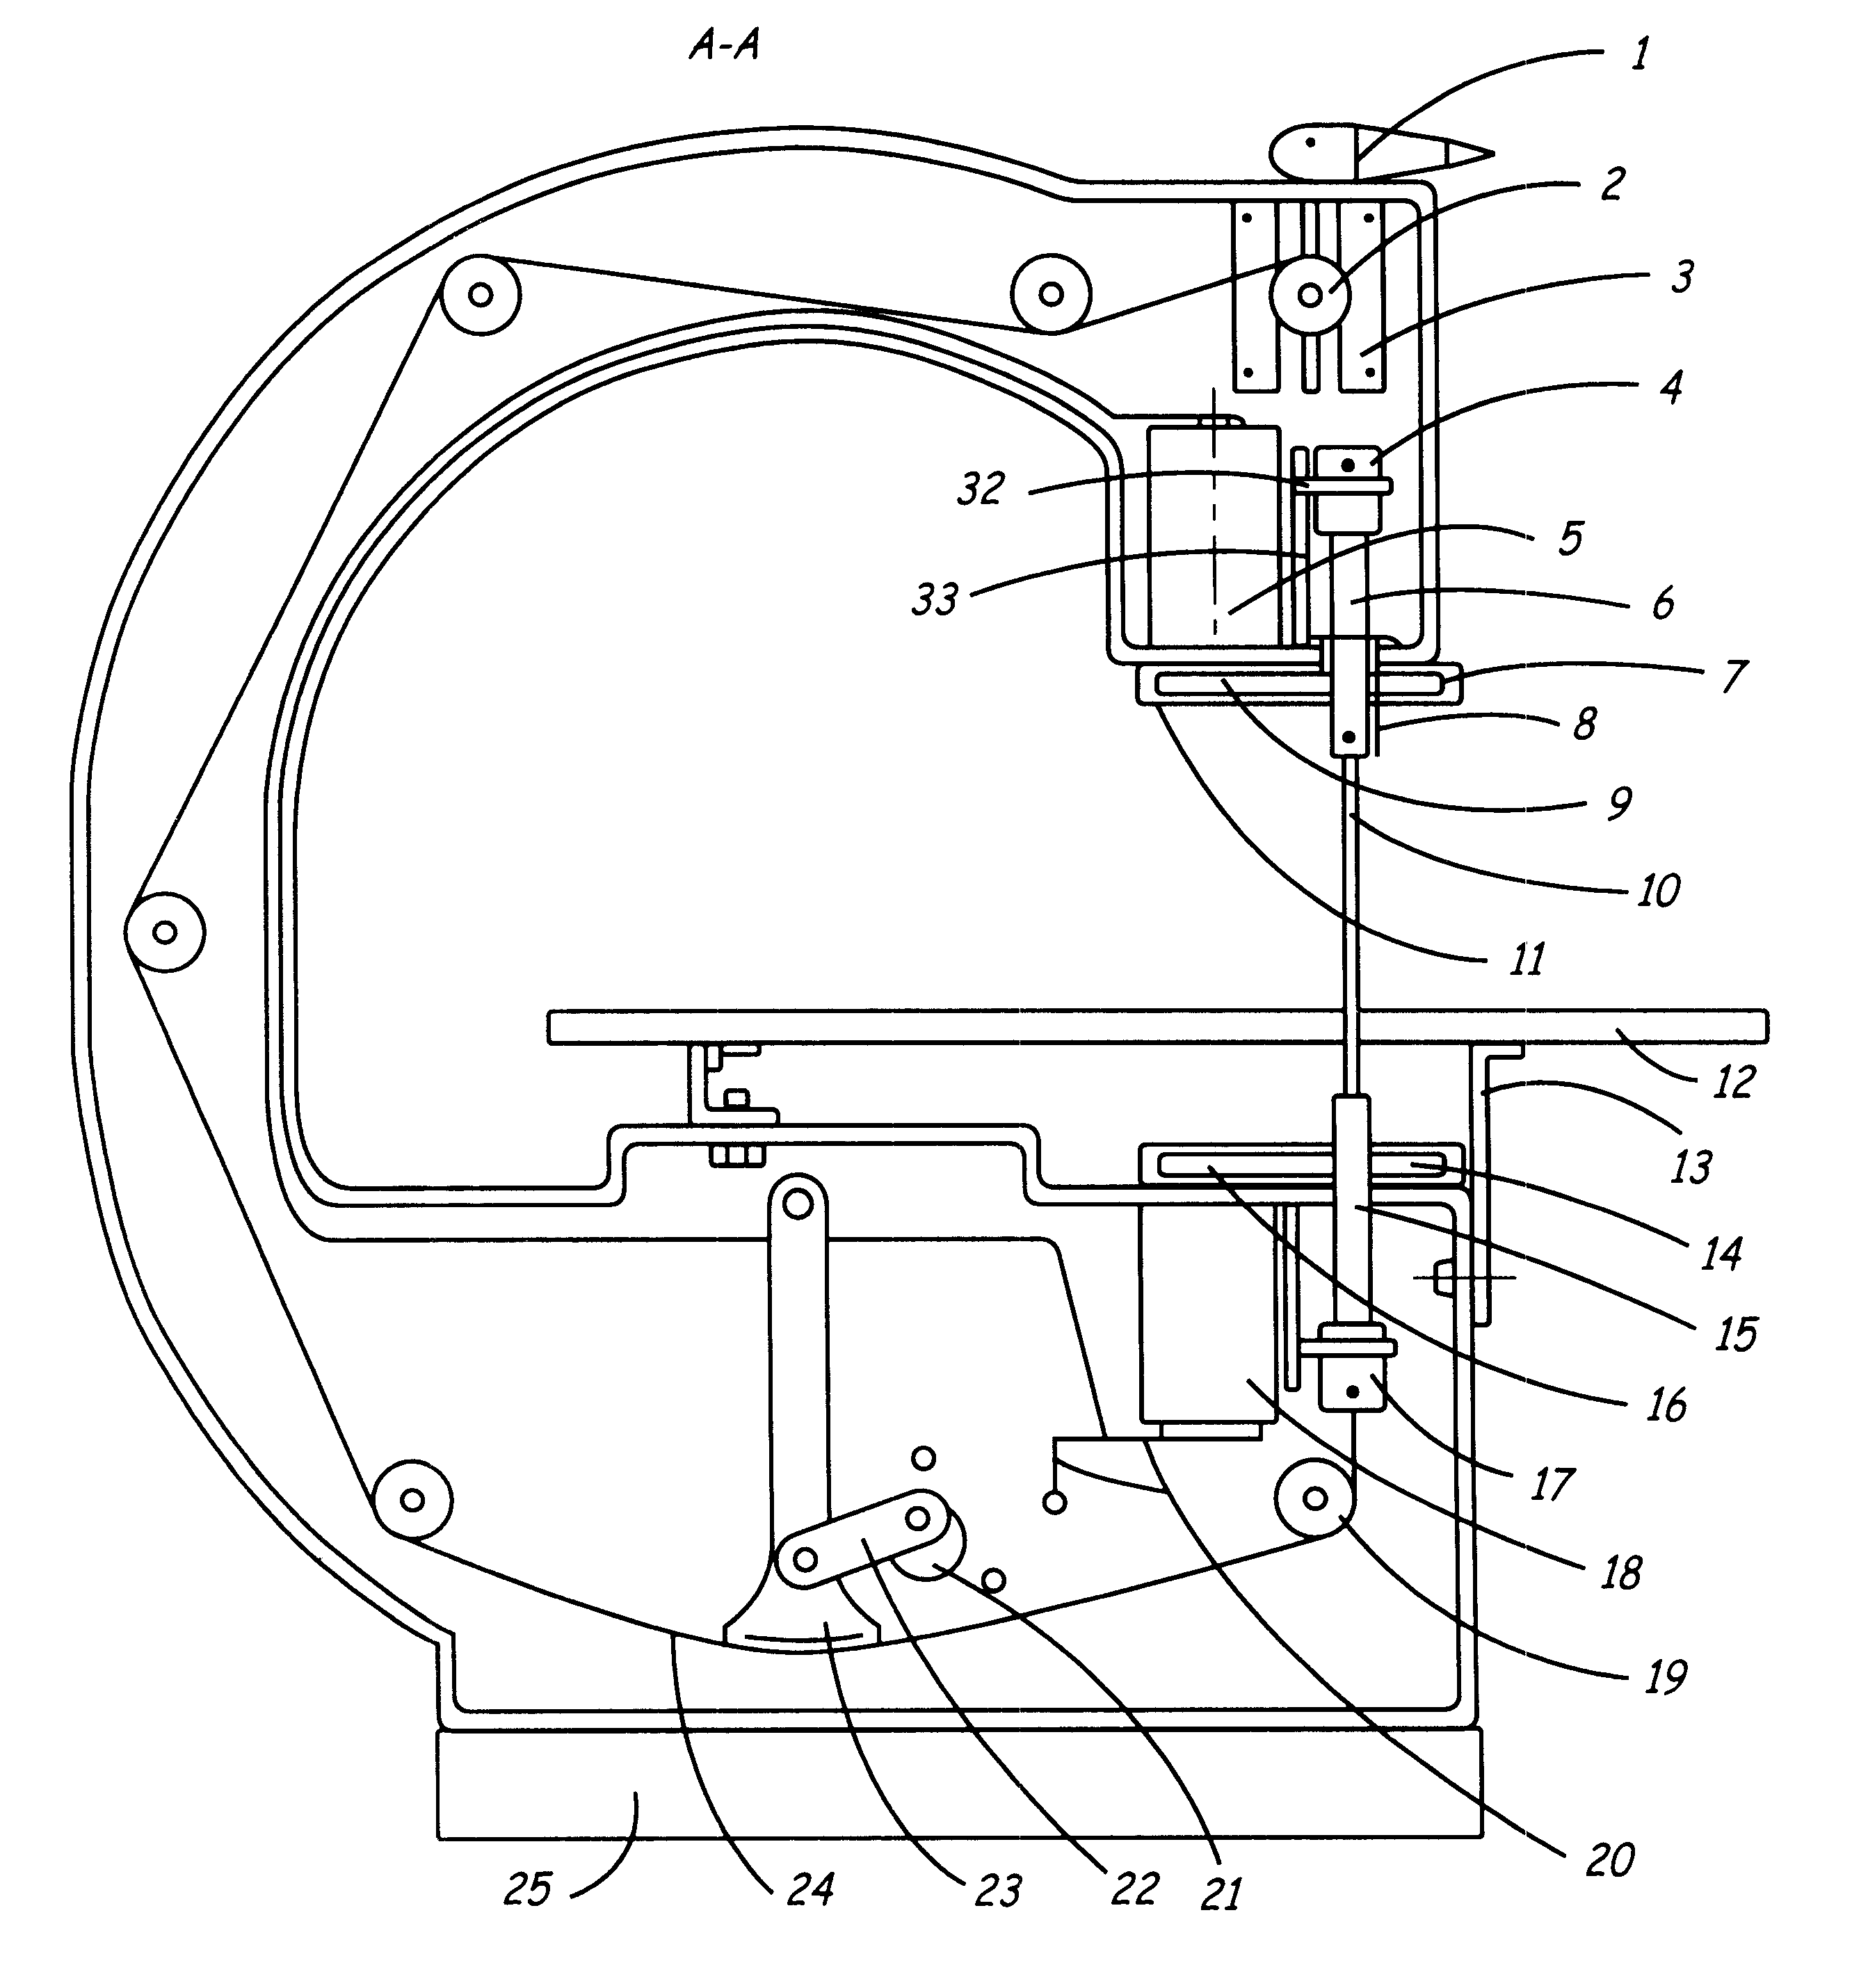 Patent US6550365 - Coping saw - Google Patents